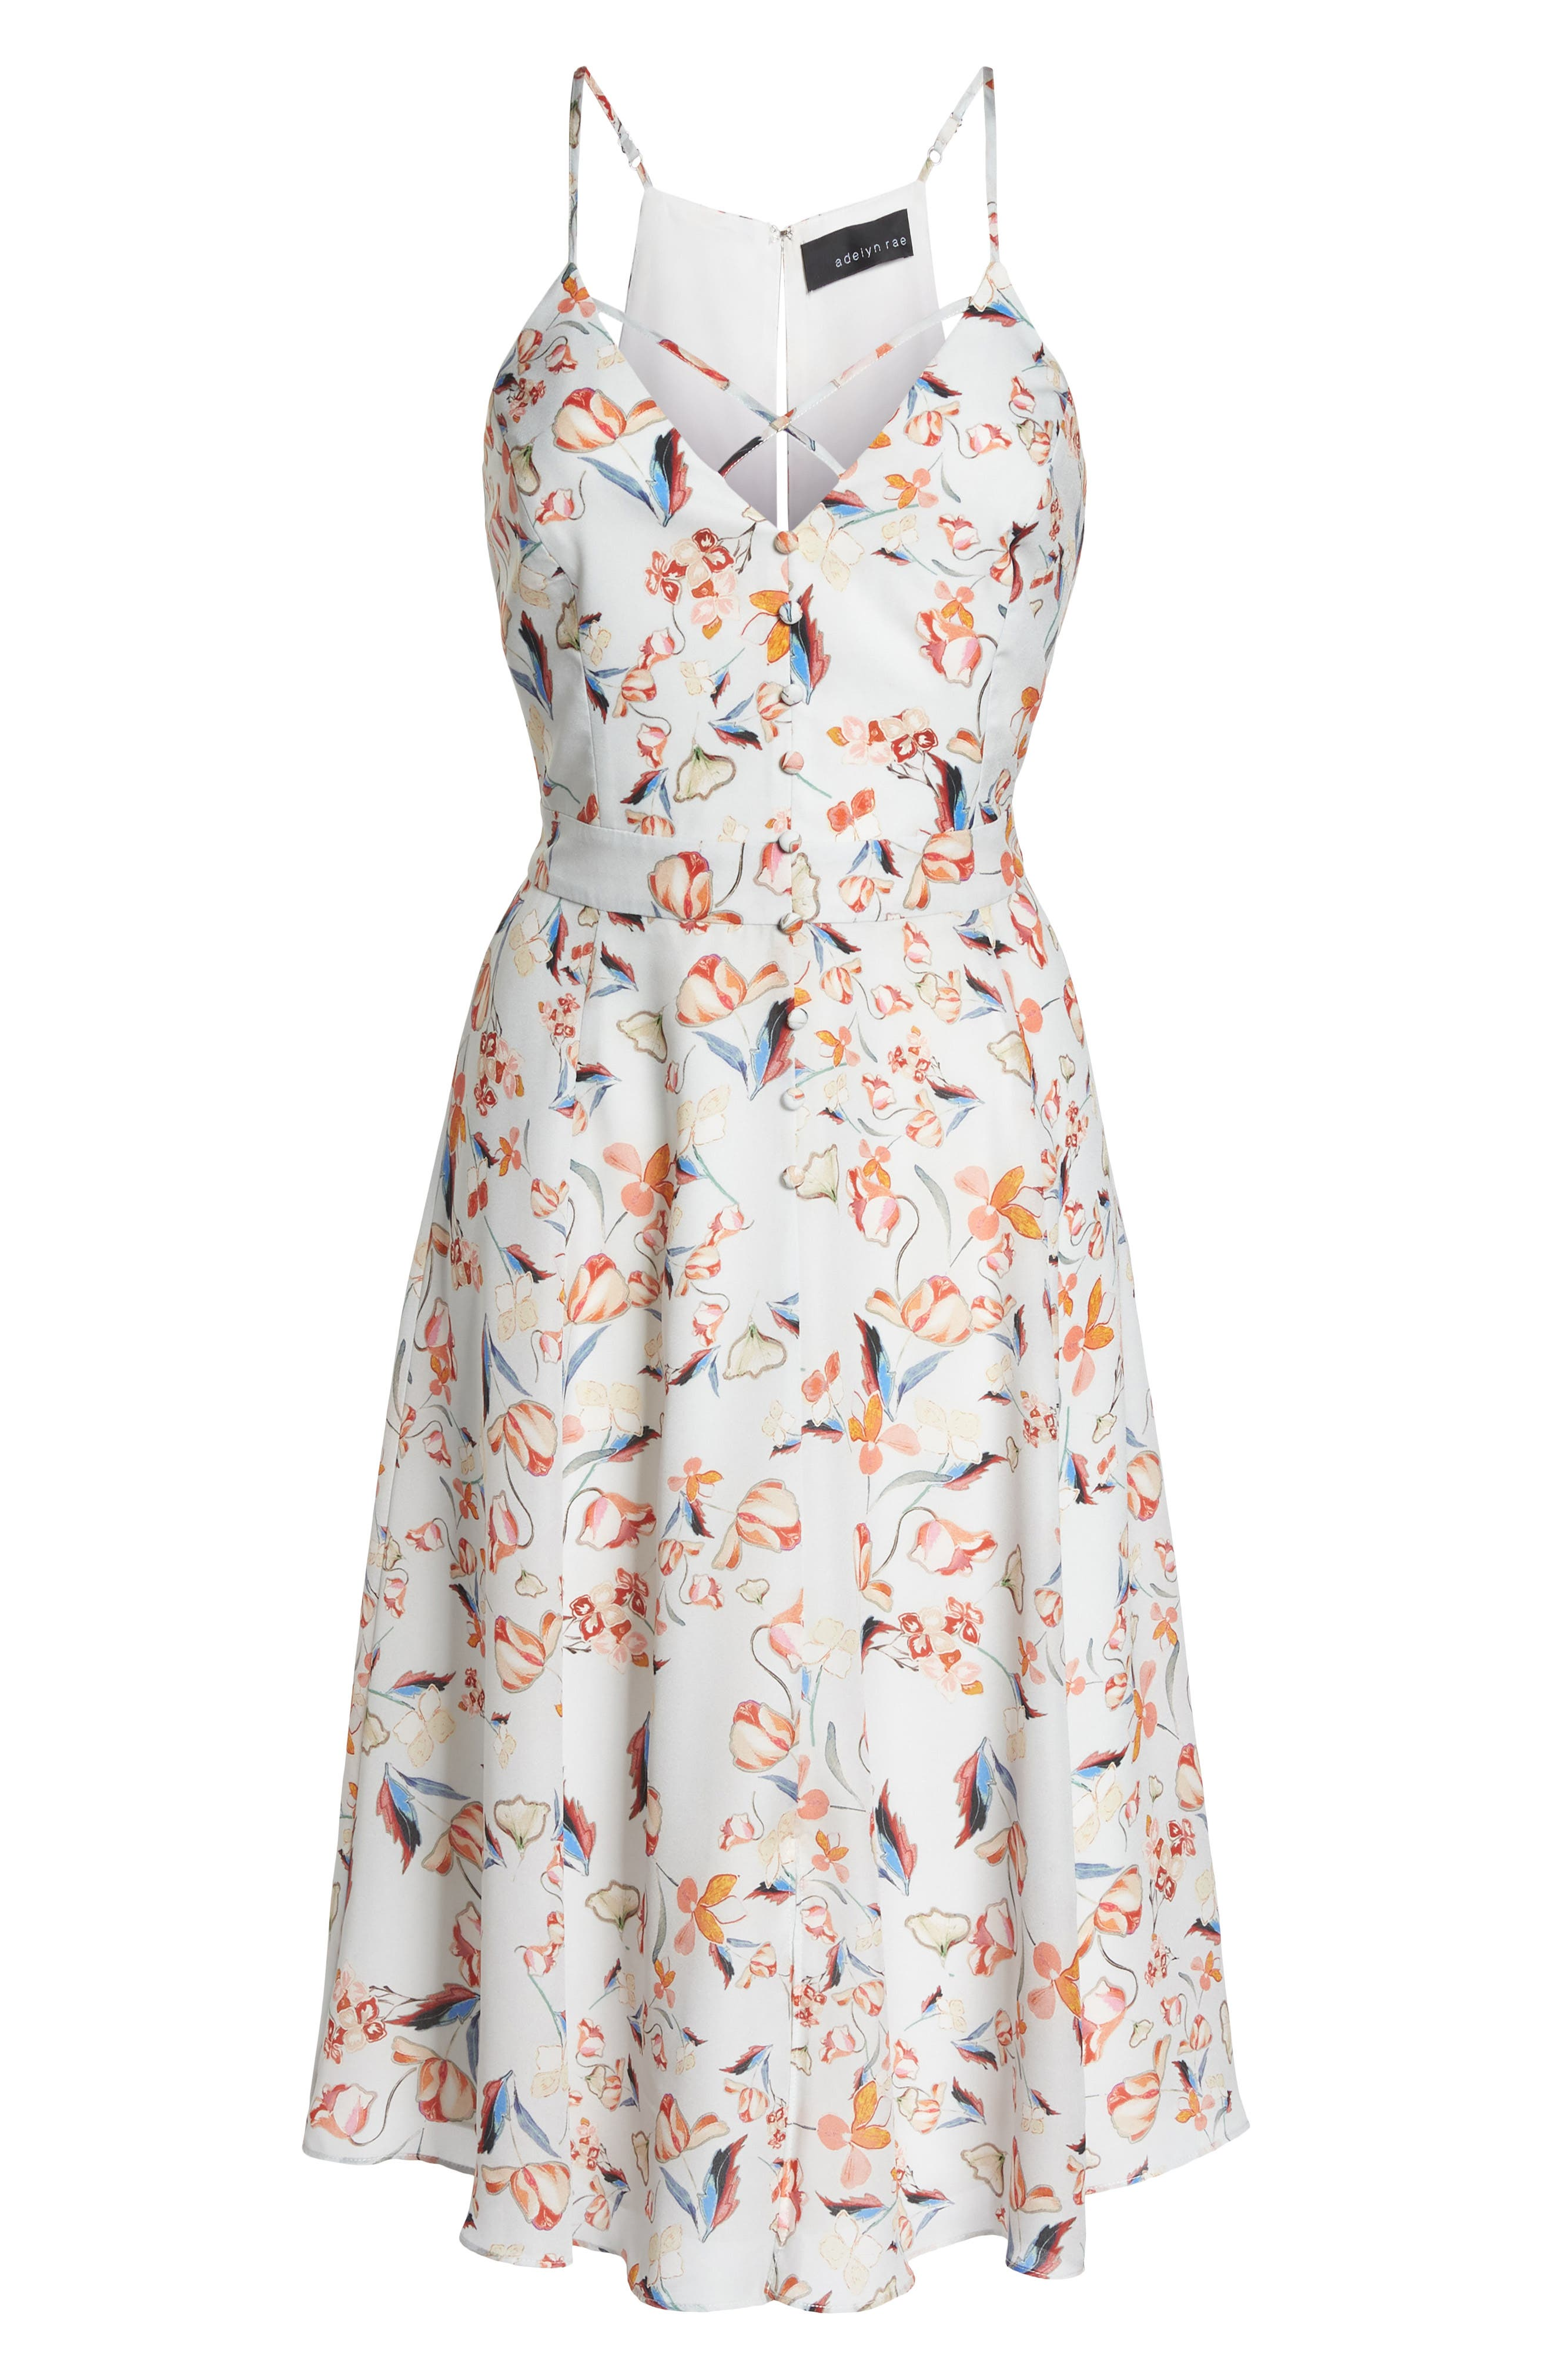 Tiffany Floral Fit & Flare Dress,                             Alternate thumbnail 7, color,                             Crystal Blue Multi